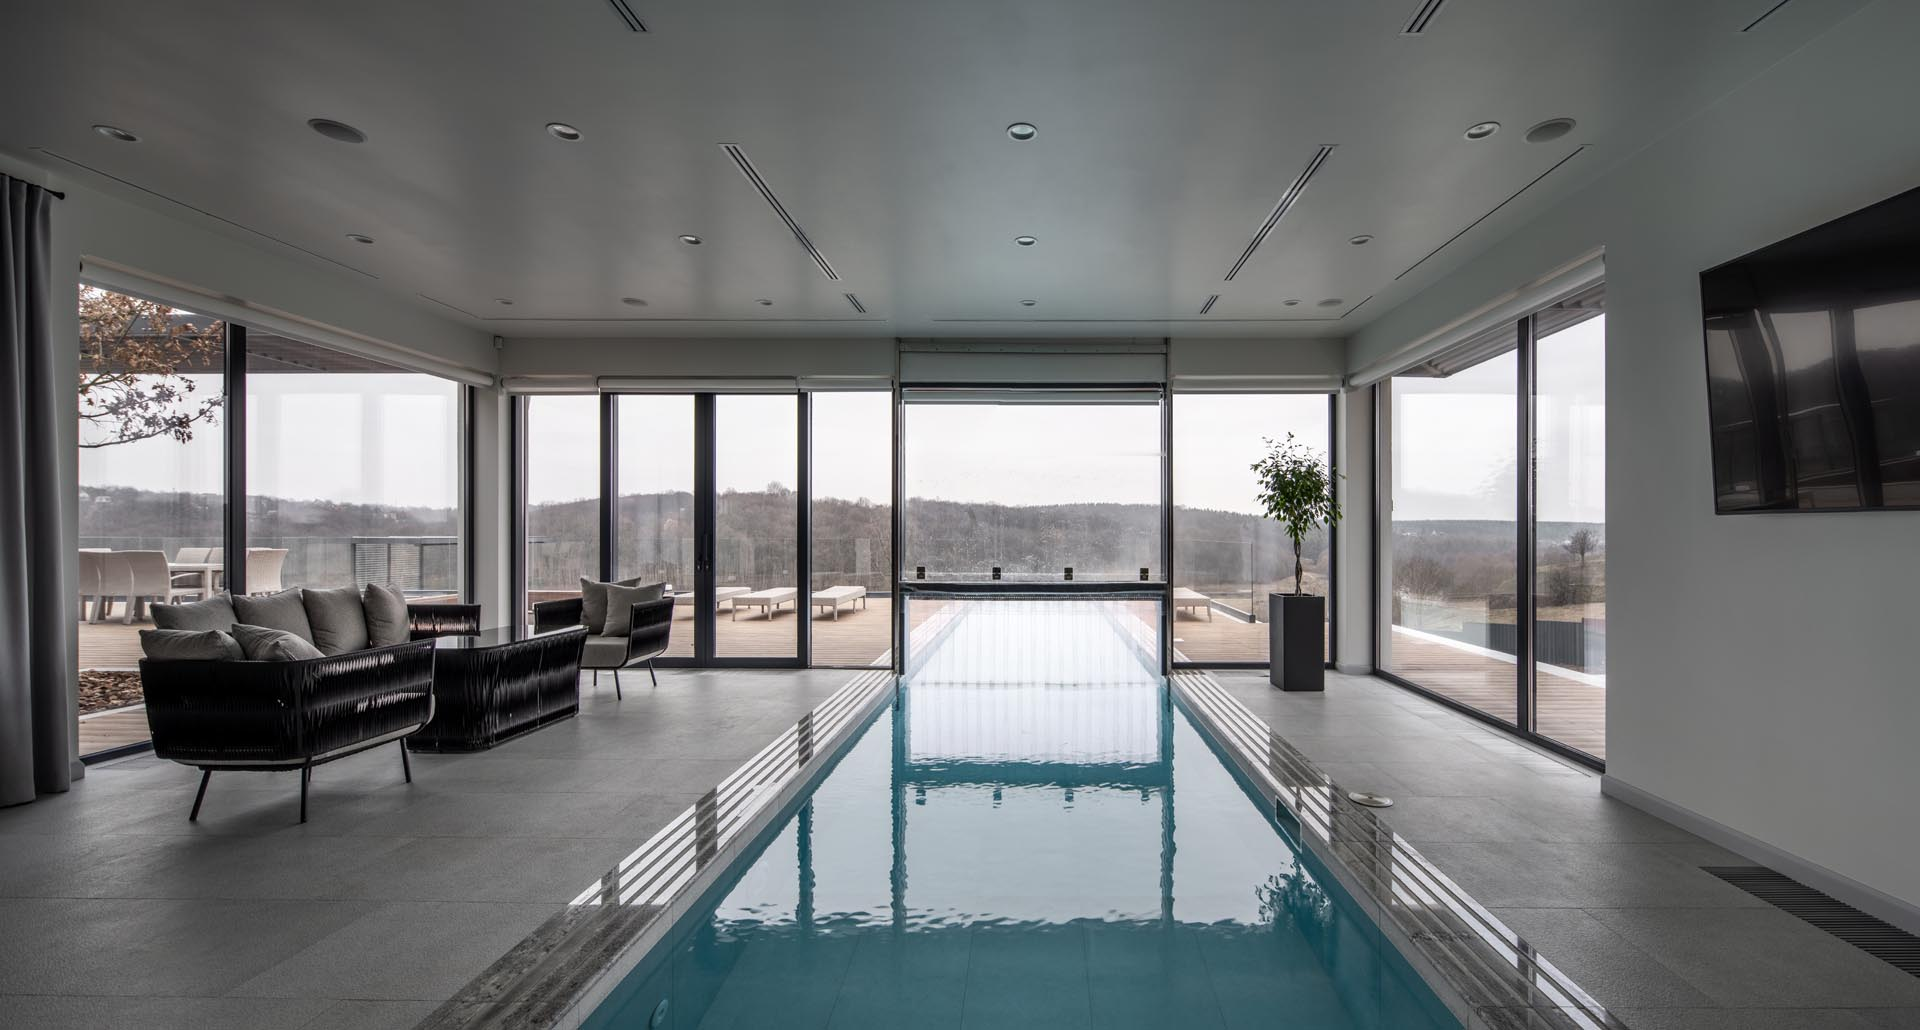 A modern home with an indoor swimming pool that travels through to the outdoors.